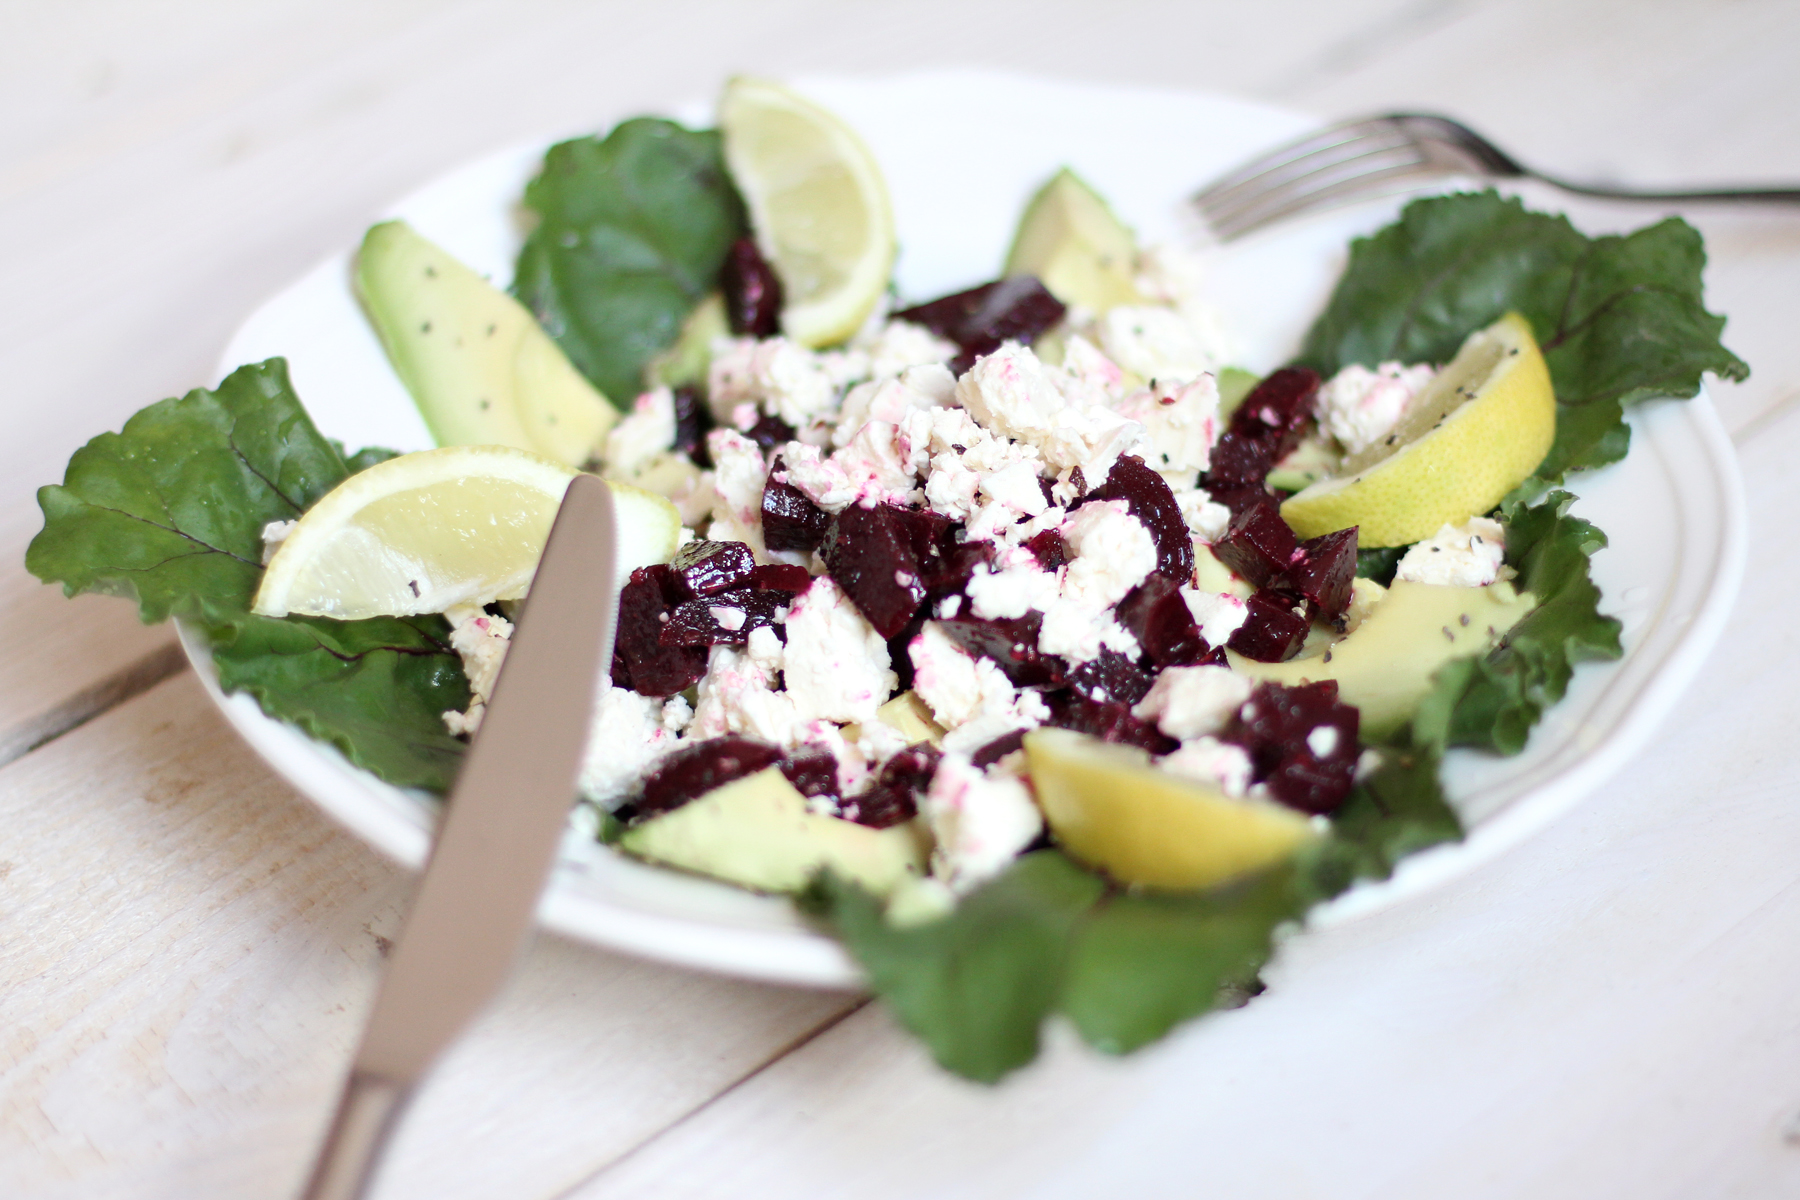 red beet feta summer salad avocado food blog lifestyle ricarda schernus cats & dogs blogger düsseldorf berlin 3